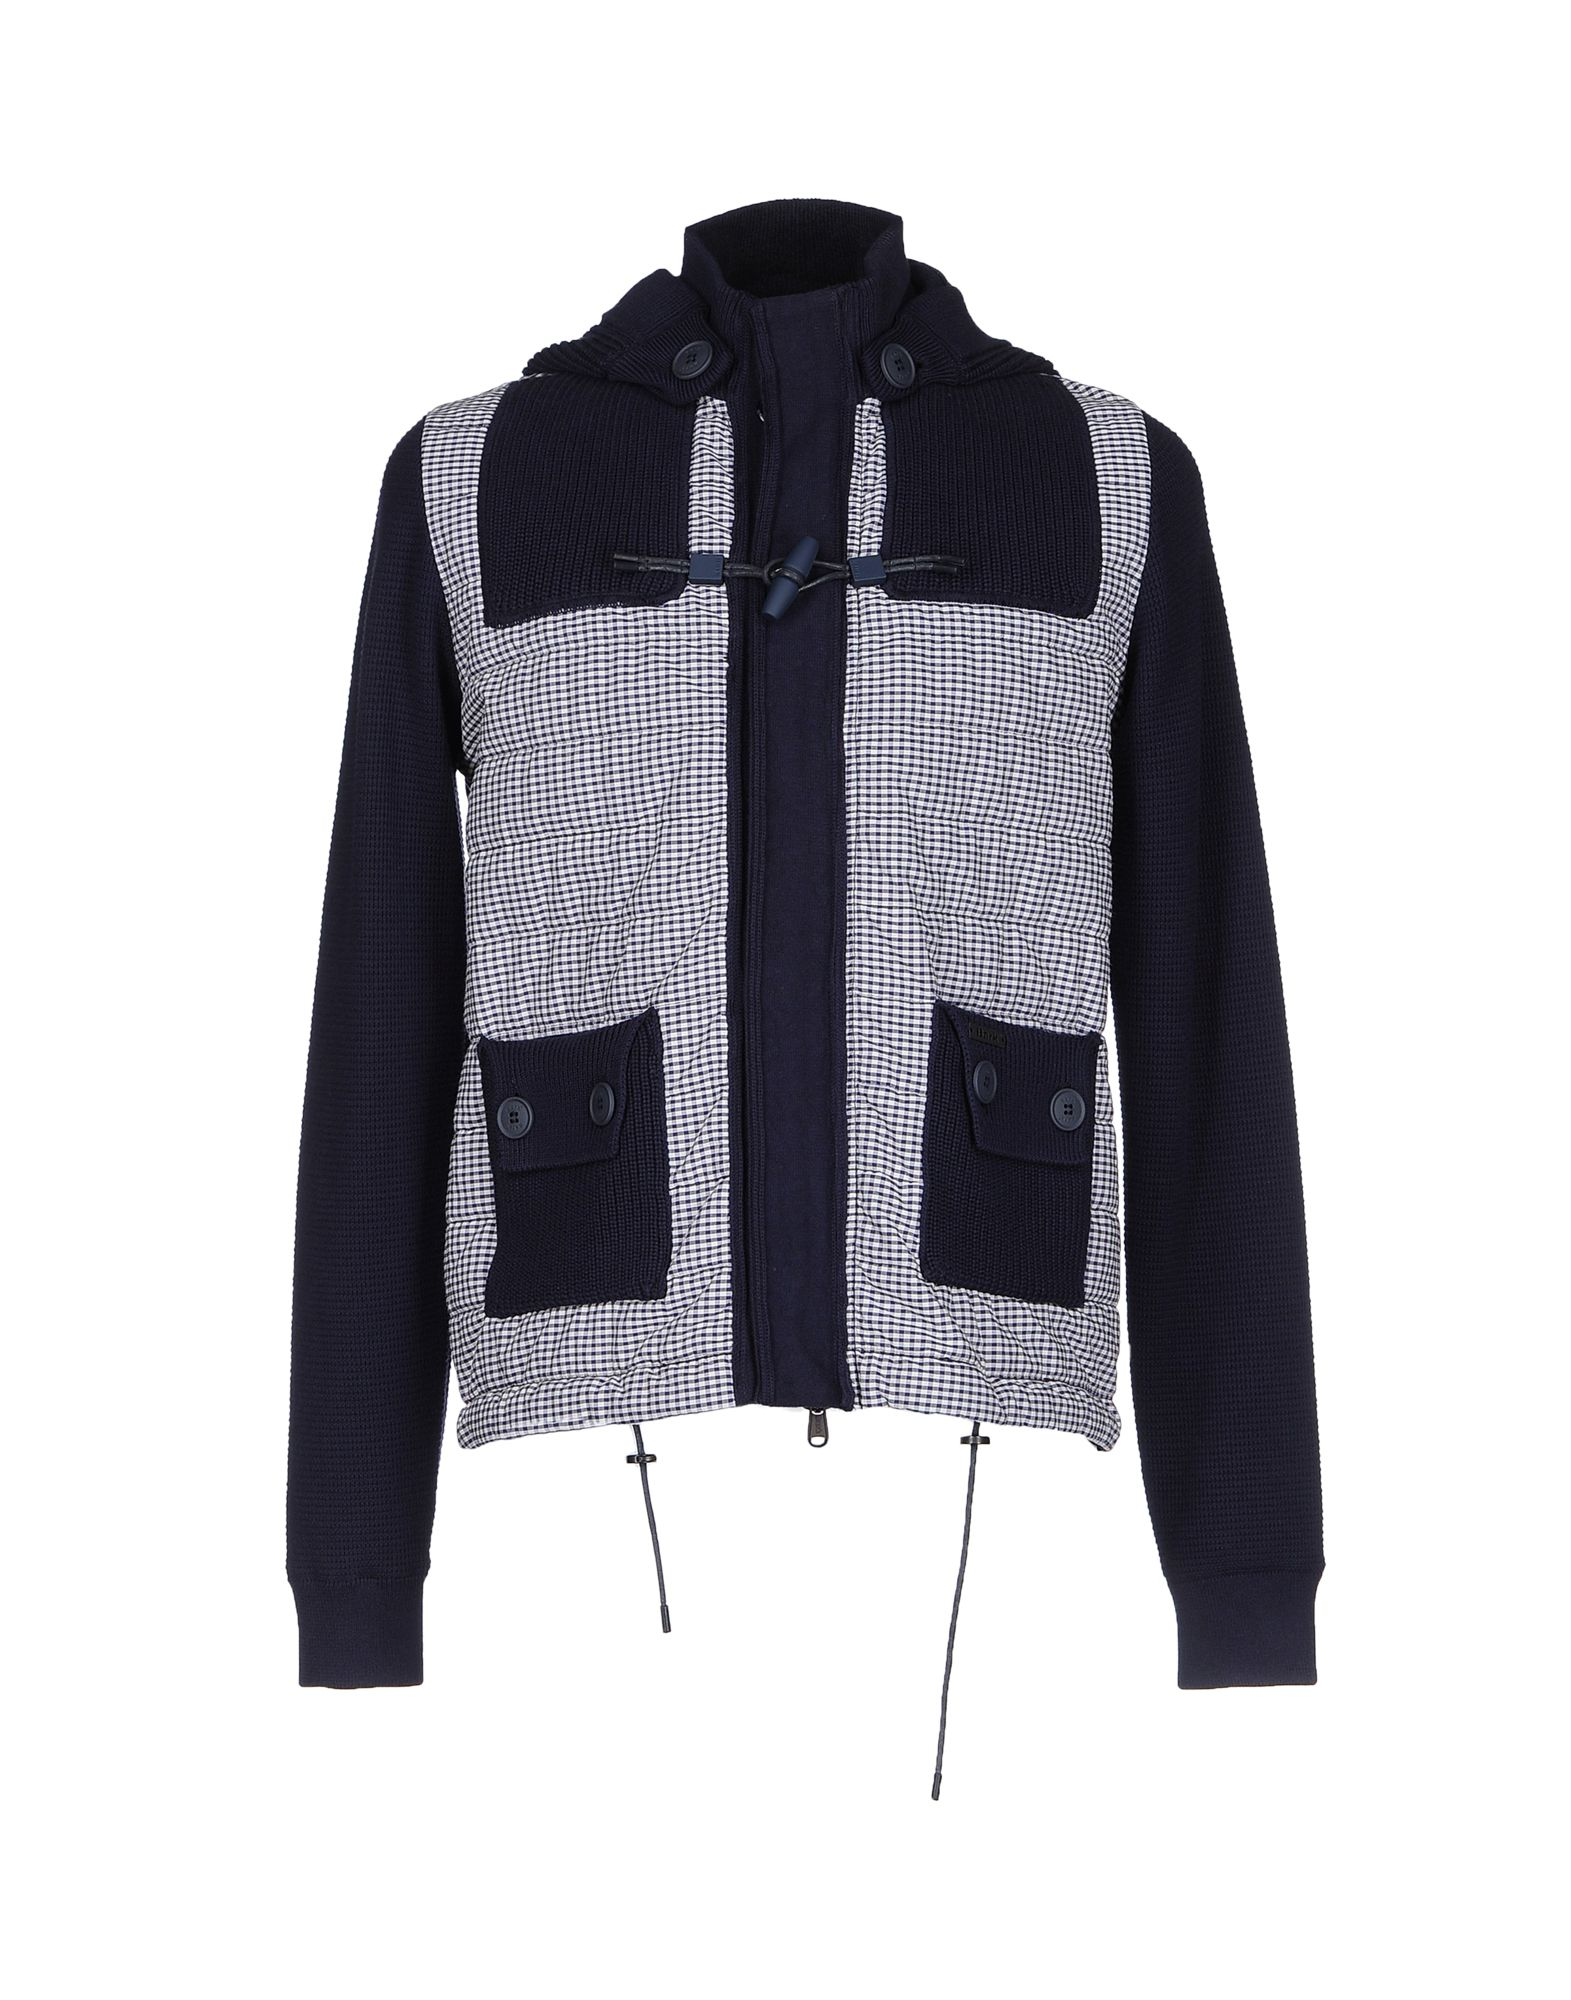 BARK Jacket in Dark Blue